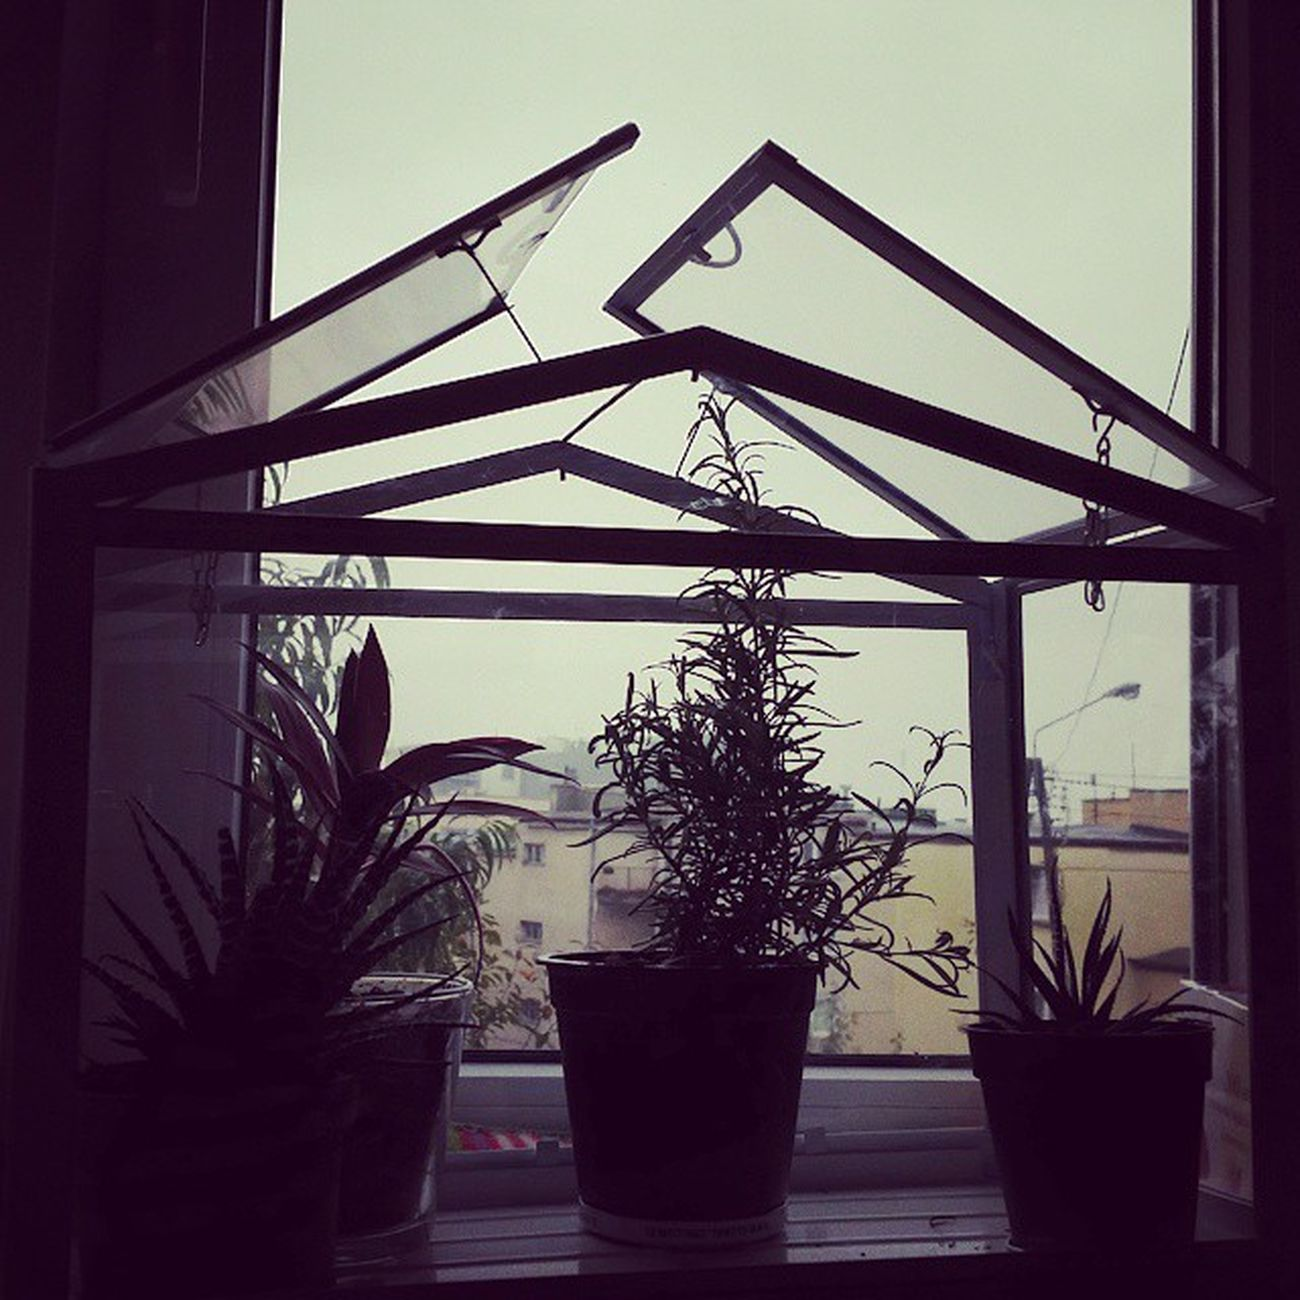 Greenhouse Plants Openroof Window rain fall Gdynia